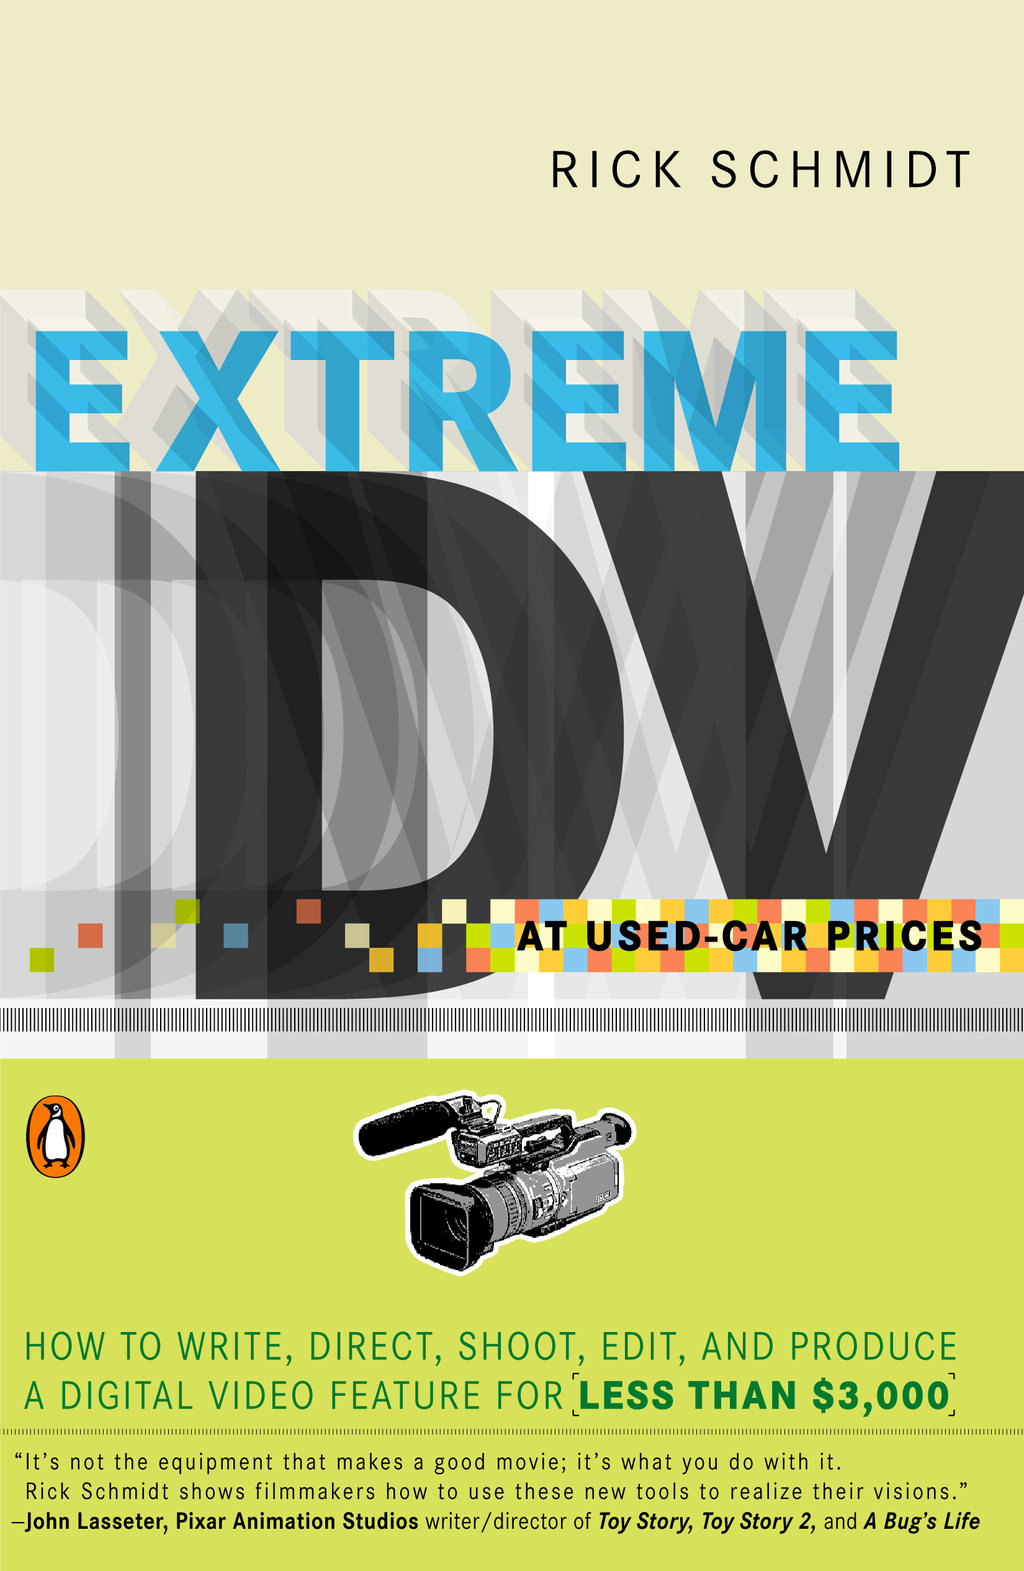 Extreme DV at Used-Car Prices By: Rick Schmidt